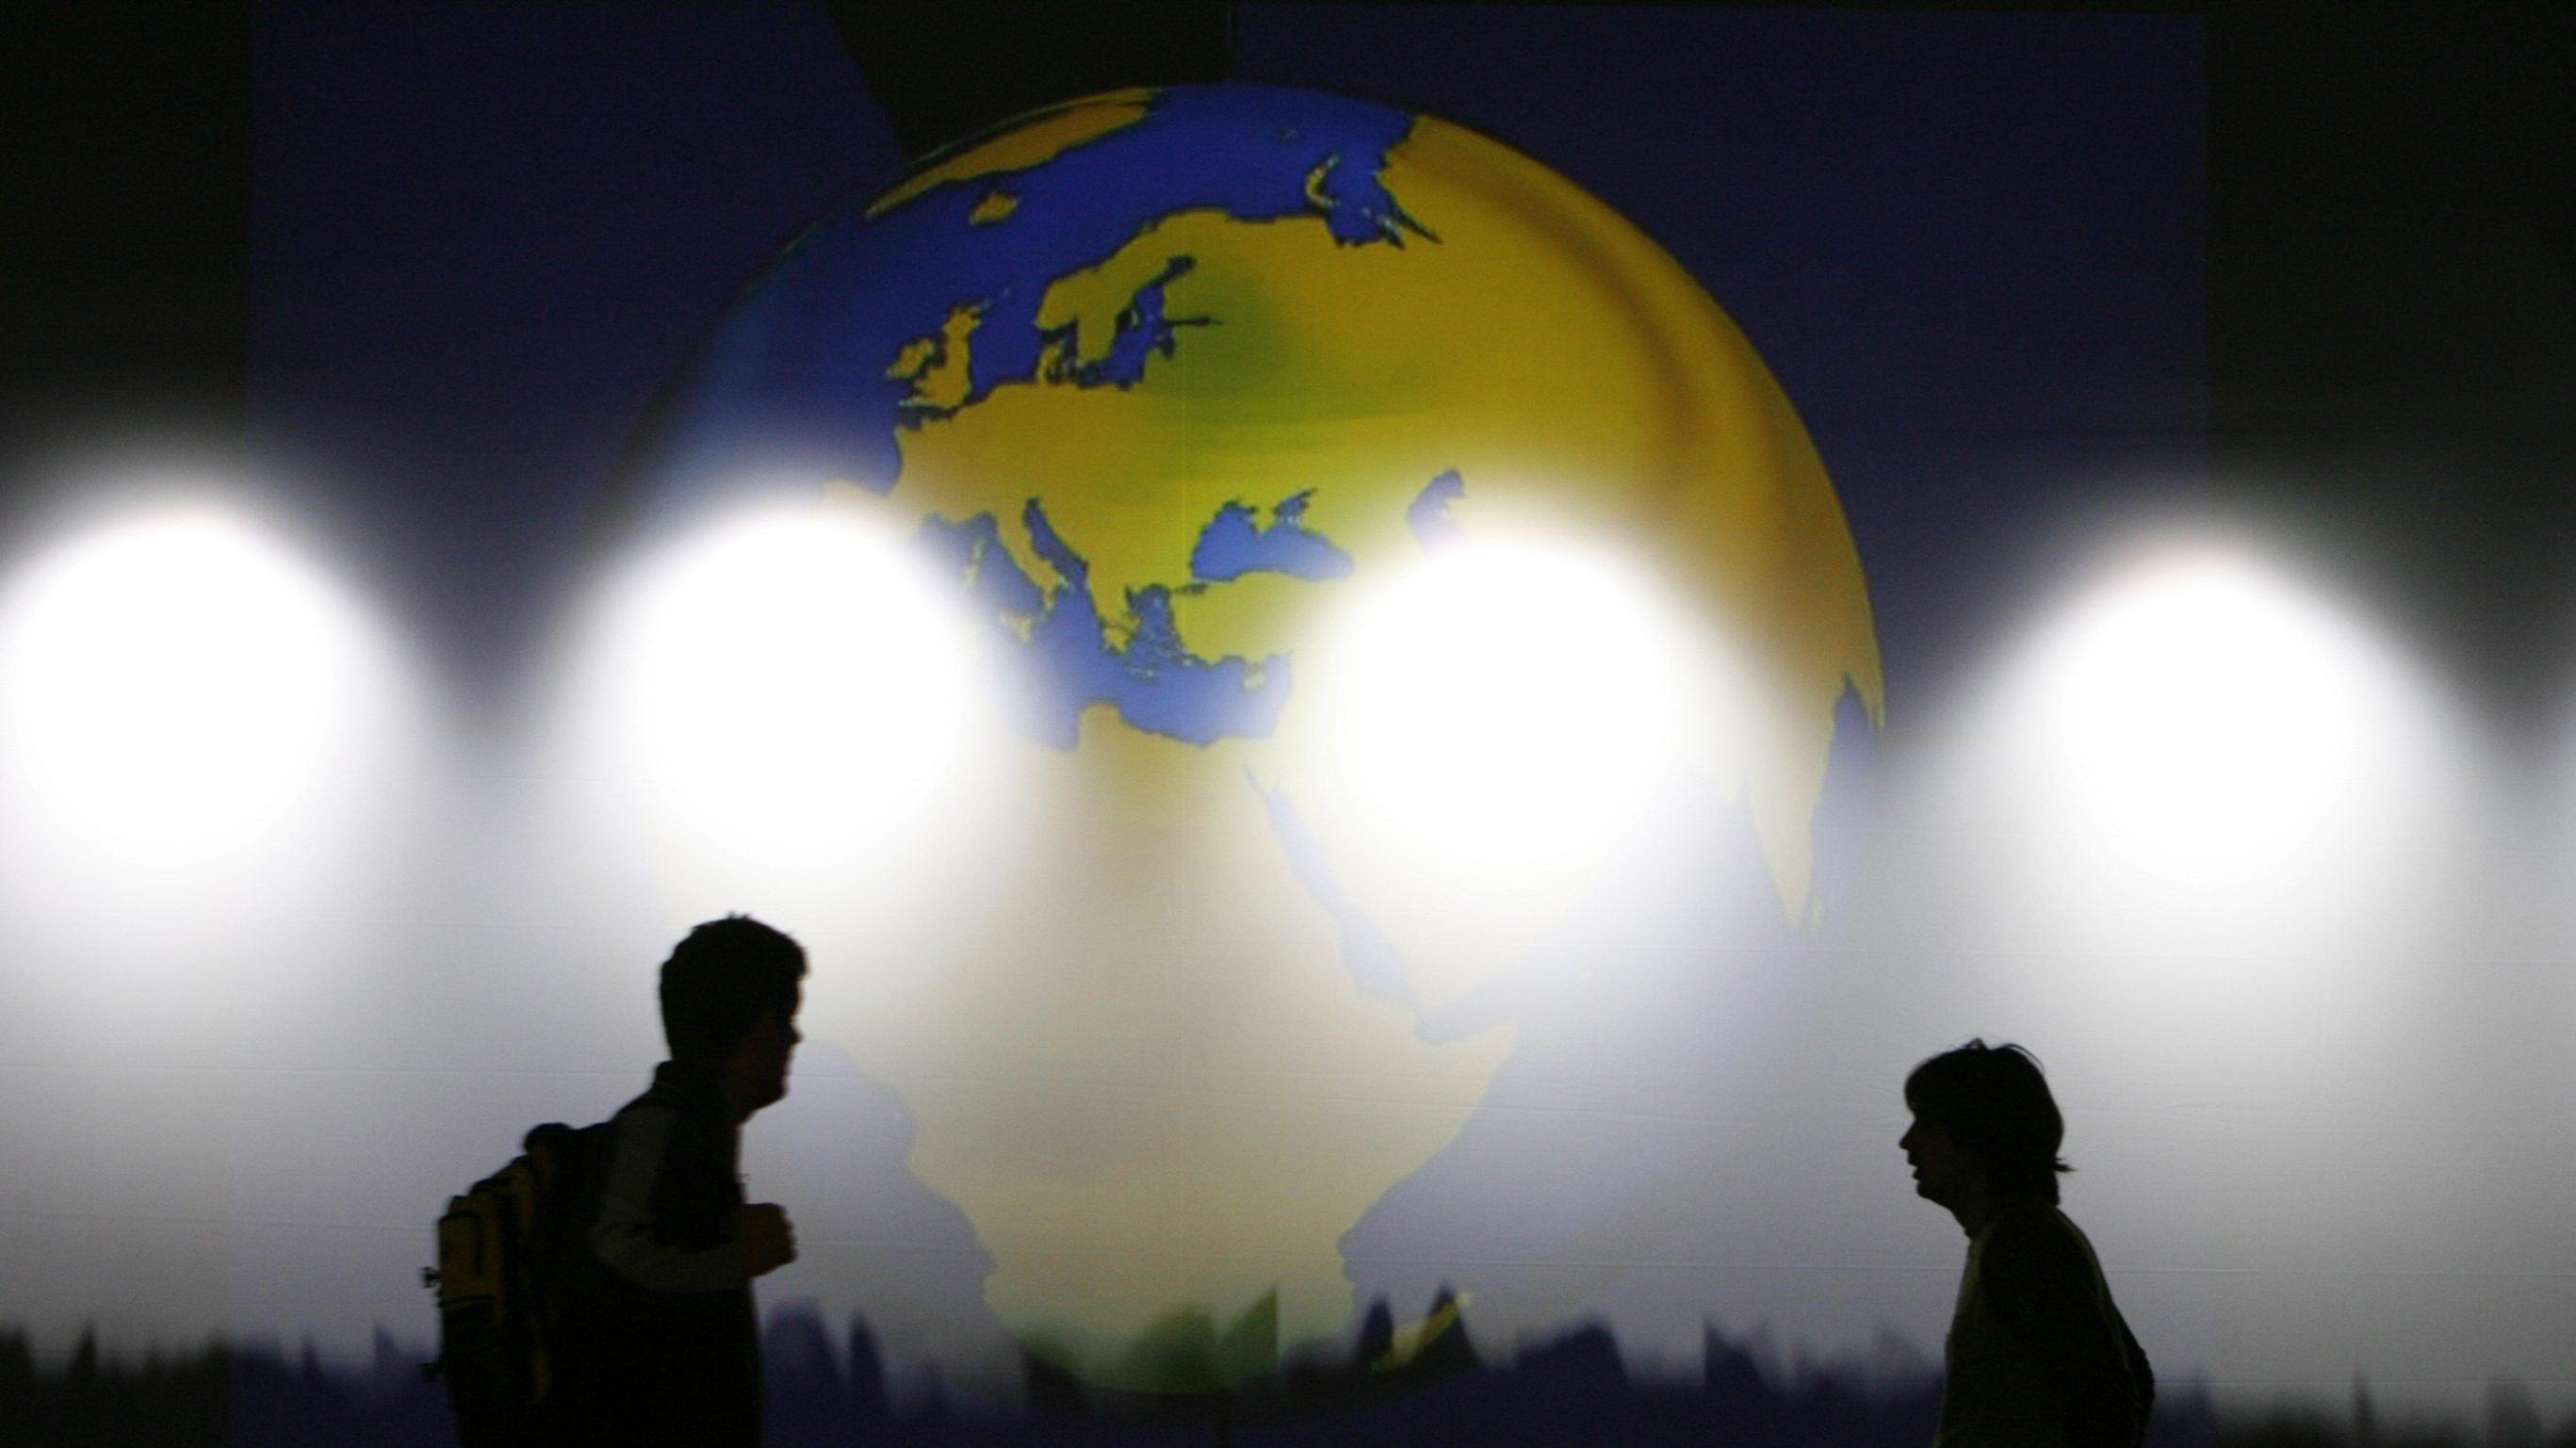 Volunteers walk in front of a projection of the globe as they prepare the main stage for the World Economic Forum (WEF) in the Swiss Alpine resort town of Davos January 22, 2008. The annual WEF will start on Wednesday and last until Sunday.